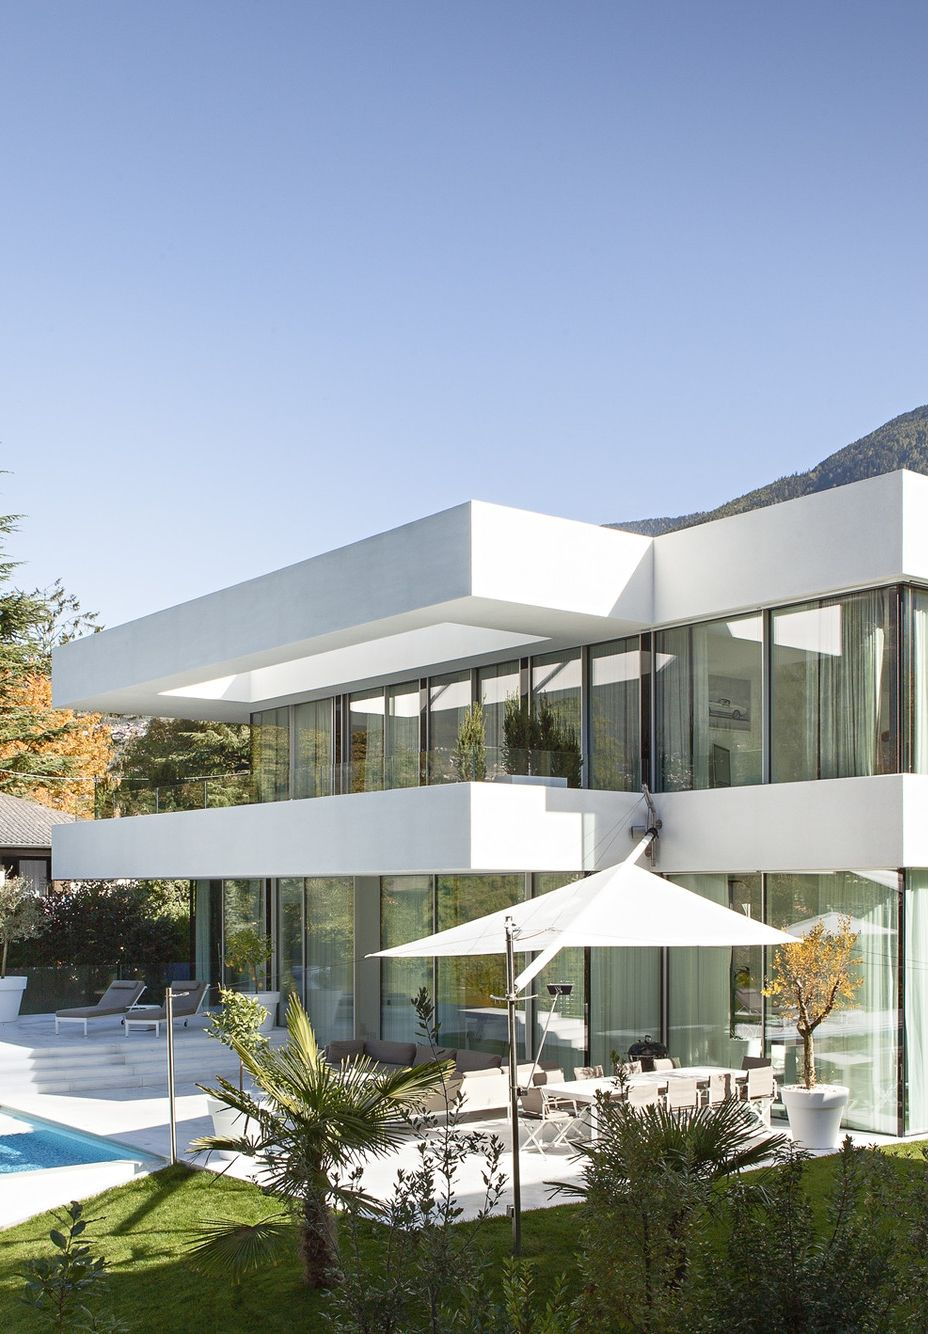 Architecture beast most beautiful houses in the world house m modern architecture house home design white residence minimalist amazing